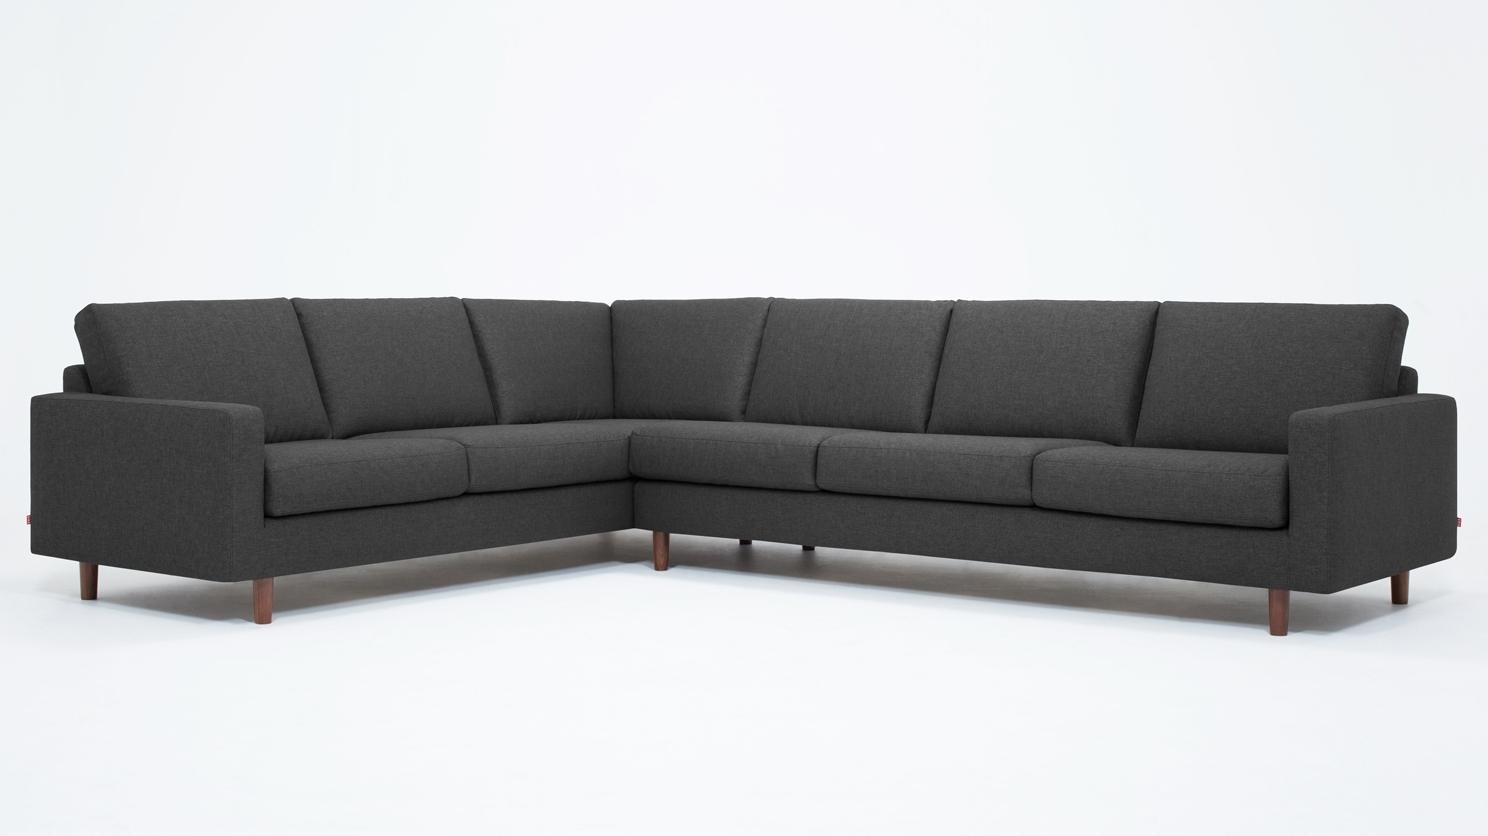 Eq3 | Oskar 2 Piece Sectional Sofa – Fabric With Regard To Eq3 Sectional Sofas (View 5 of 10)